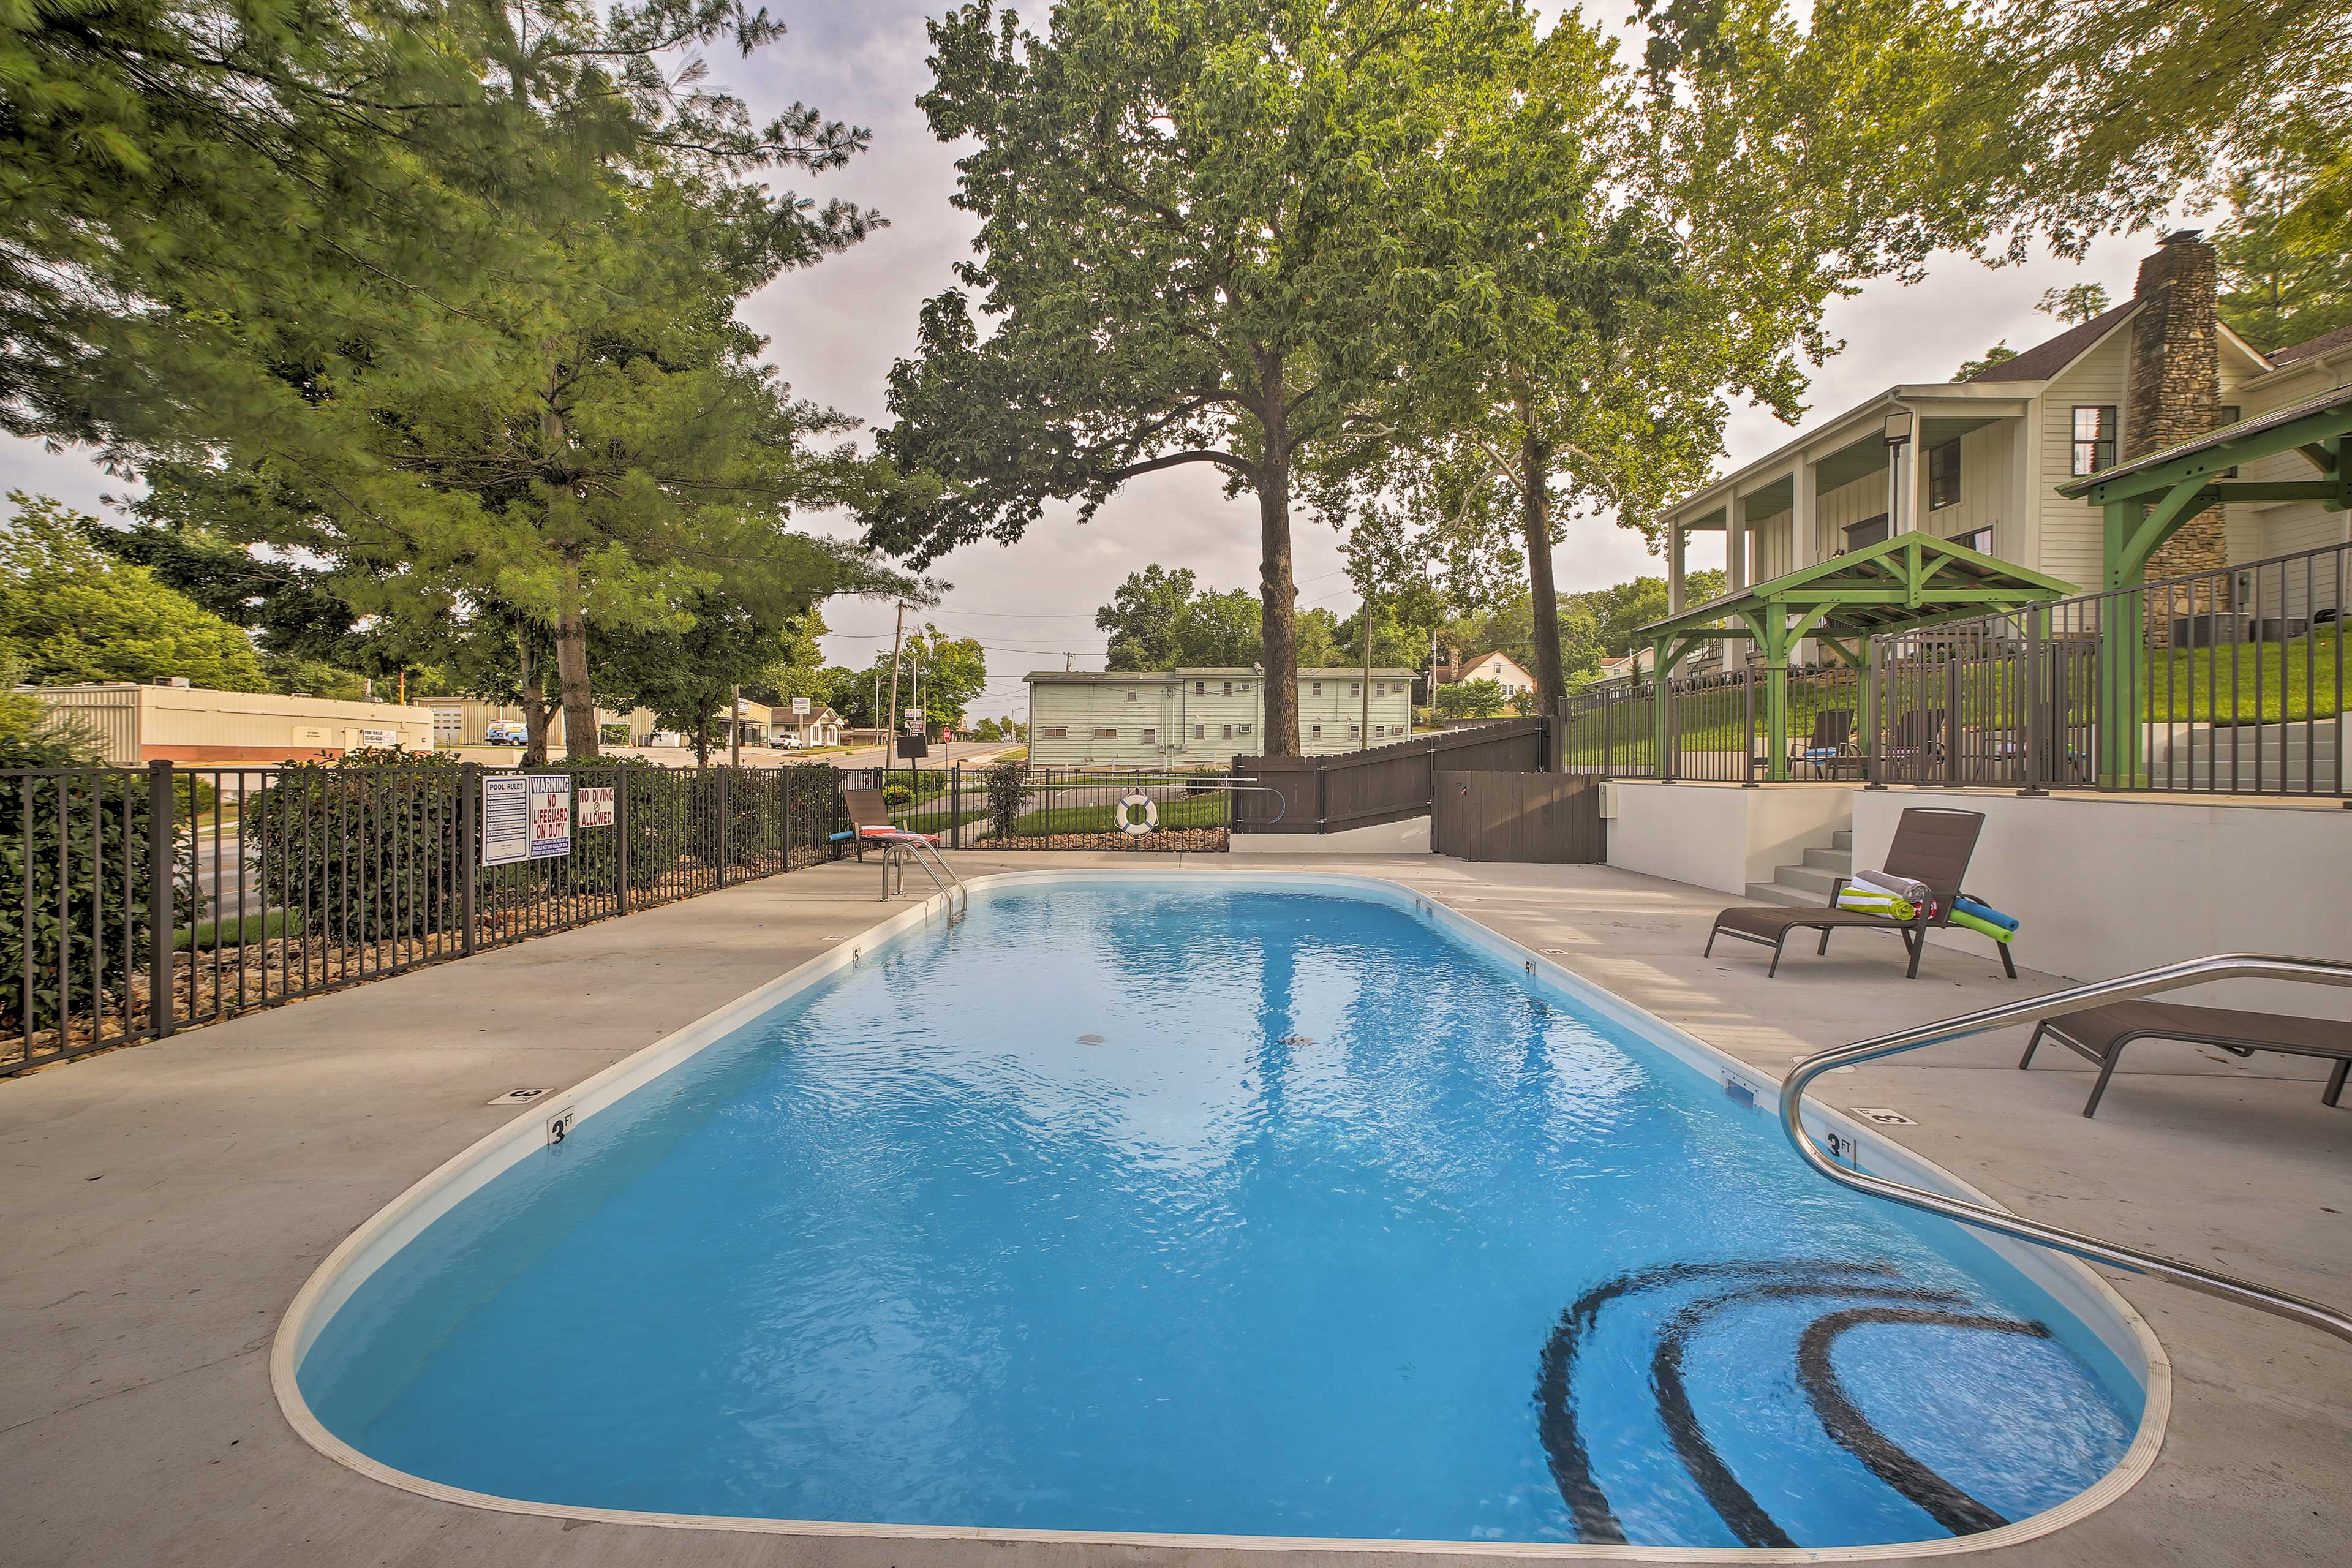 You'll have access to this shared swimming pool!